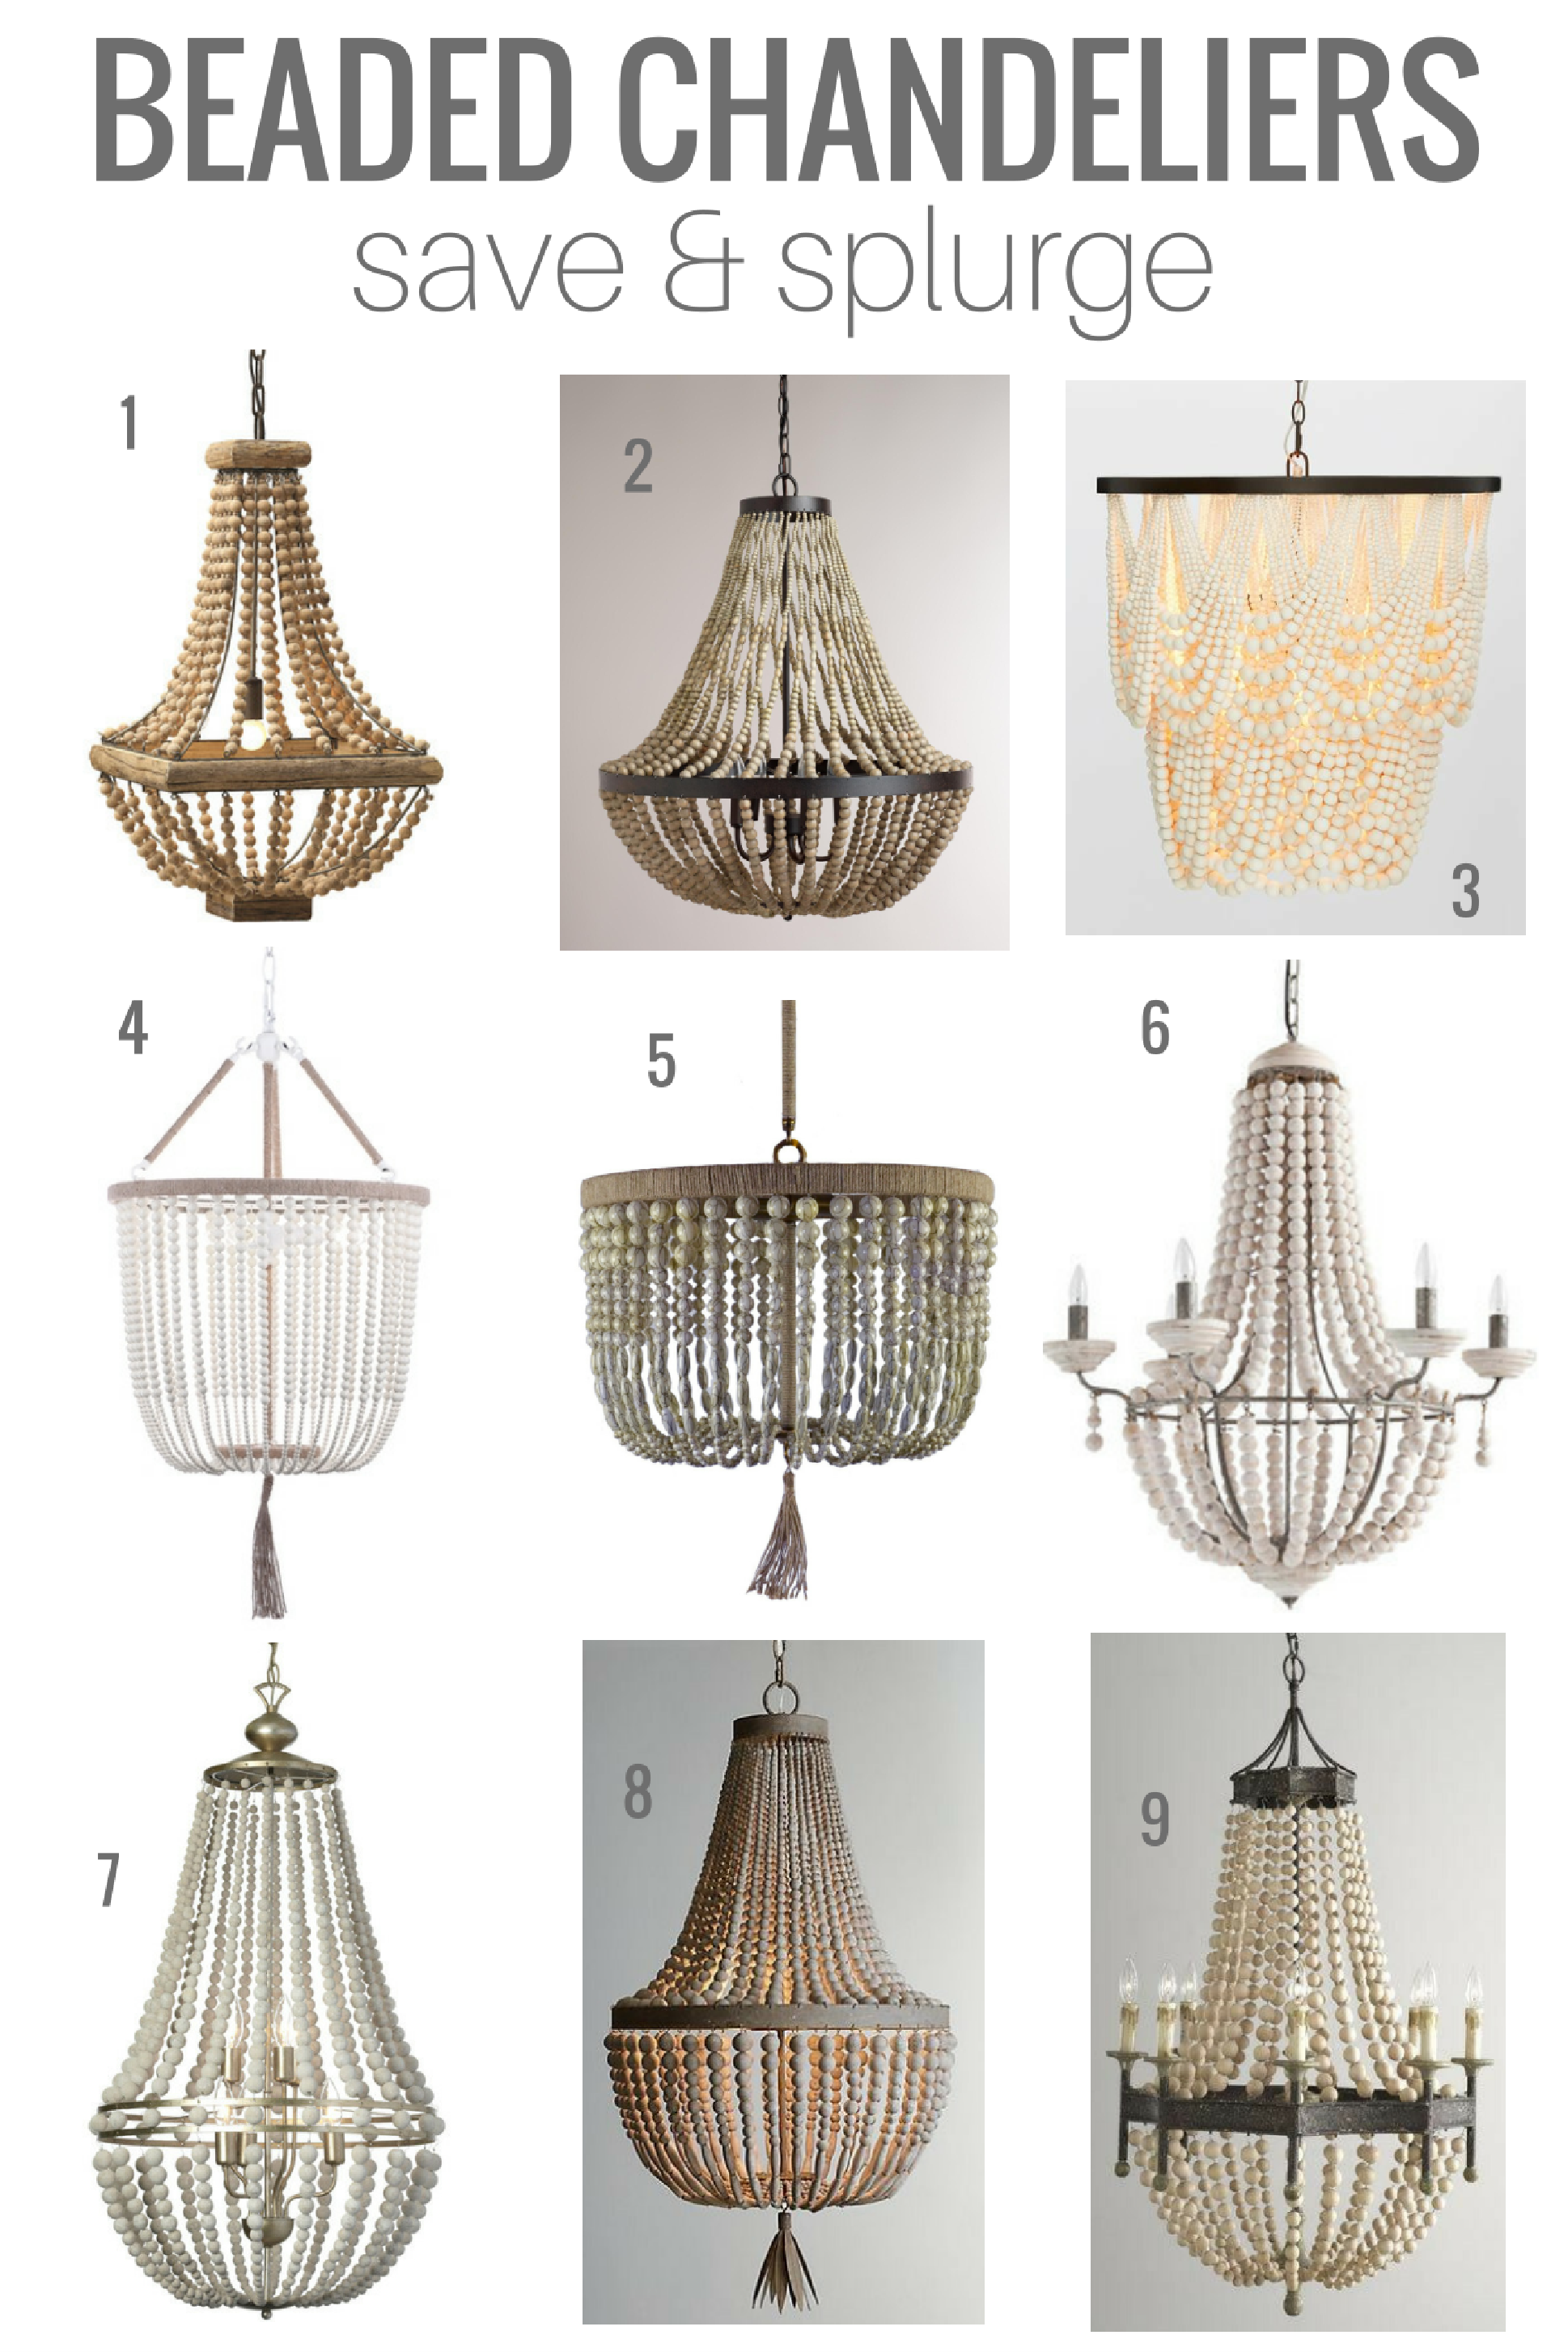 White washed wood sphere chandelier chandeliers by shades of light - Beaded Chandeliers Invaluable Lighting Lessons